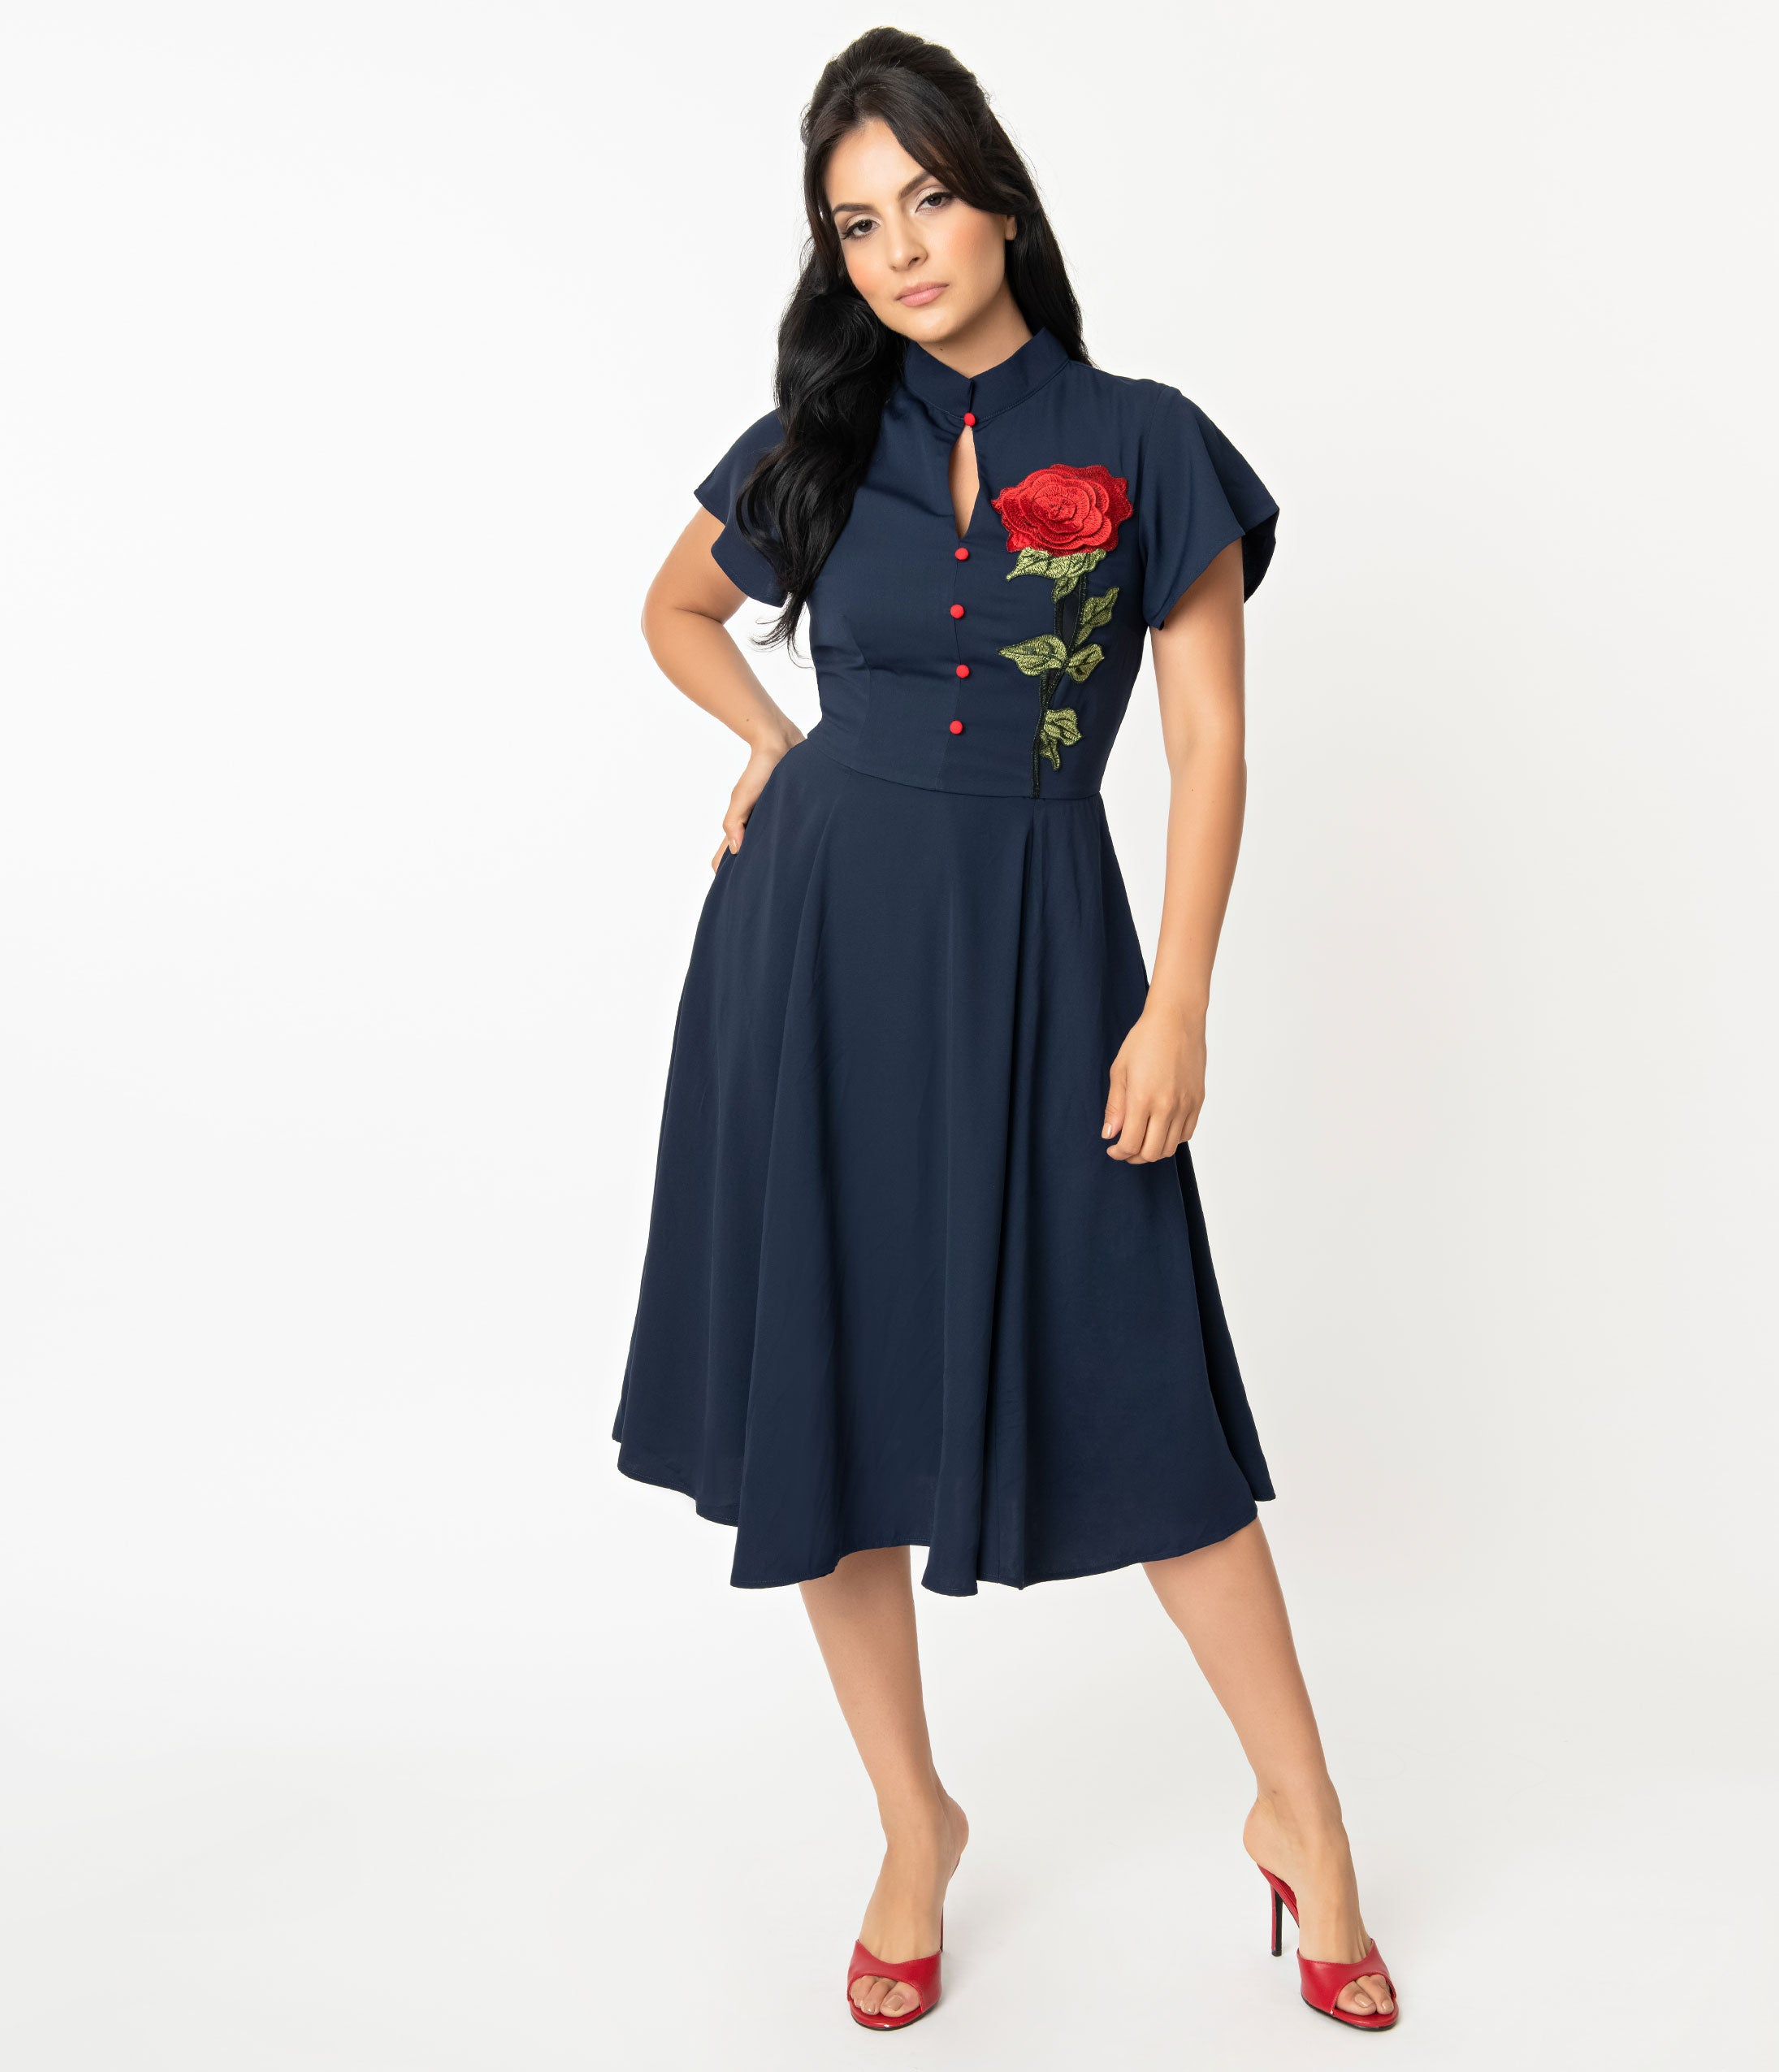 500 Vintage Style Dresses for Sale | Vintage Inspired Dresses Unique Vintage Navy  Embroidered Red Rose Baltimore Swing Dress $98.00 AT vintagedancer.com